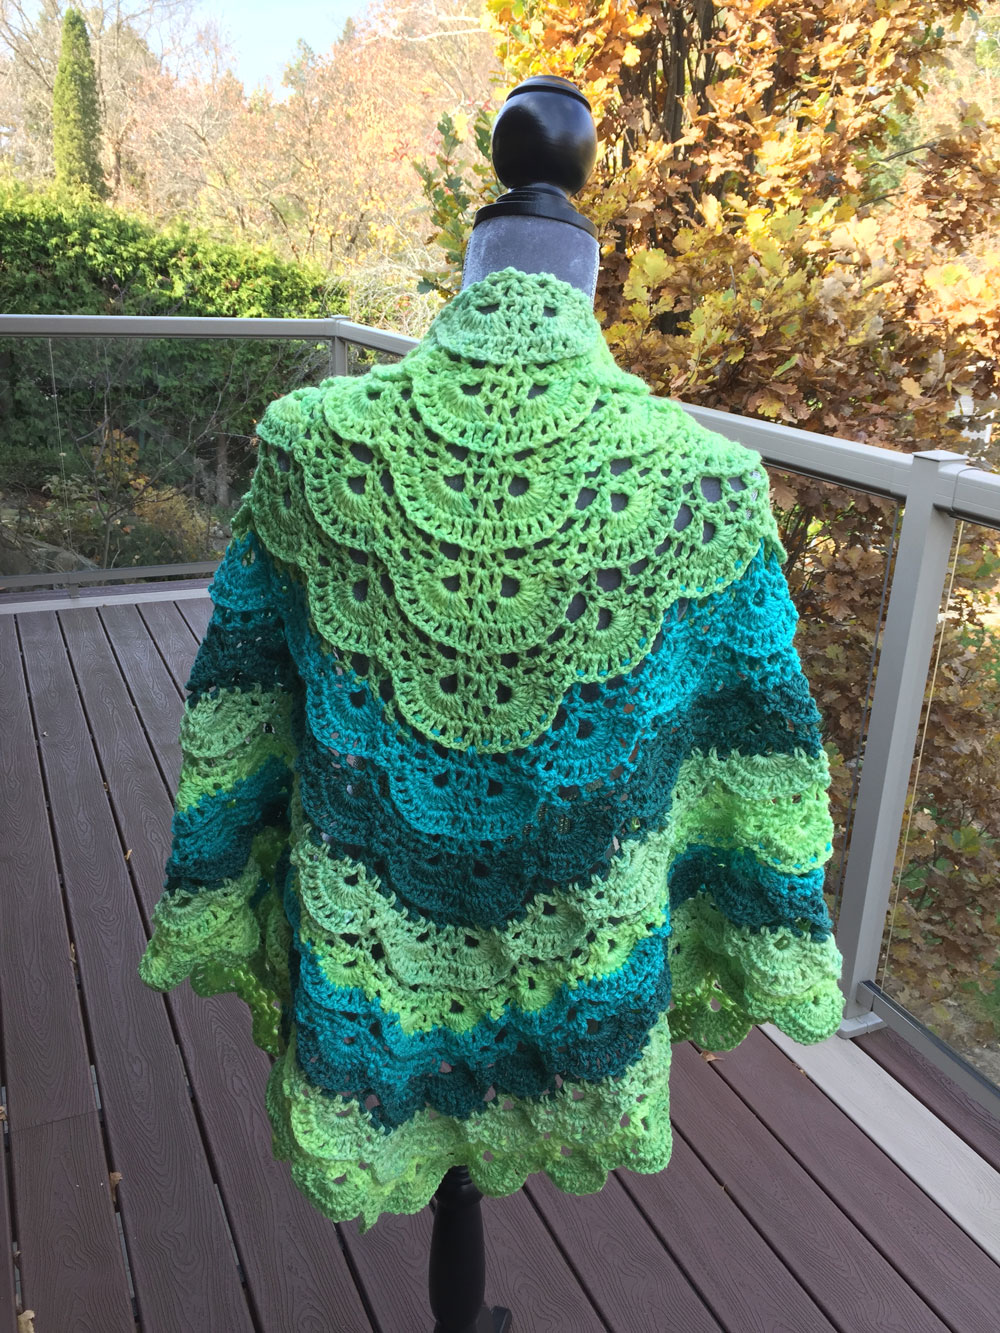 Fluffy Merinque Shawl by Mikey, Adapted with Existing Pattern on Yarnspirations.